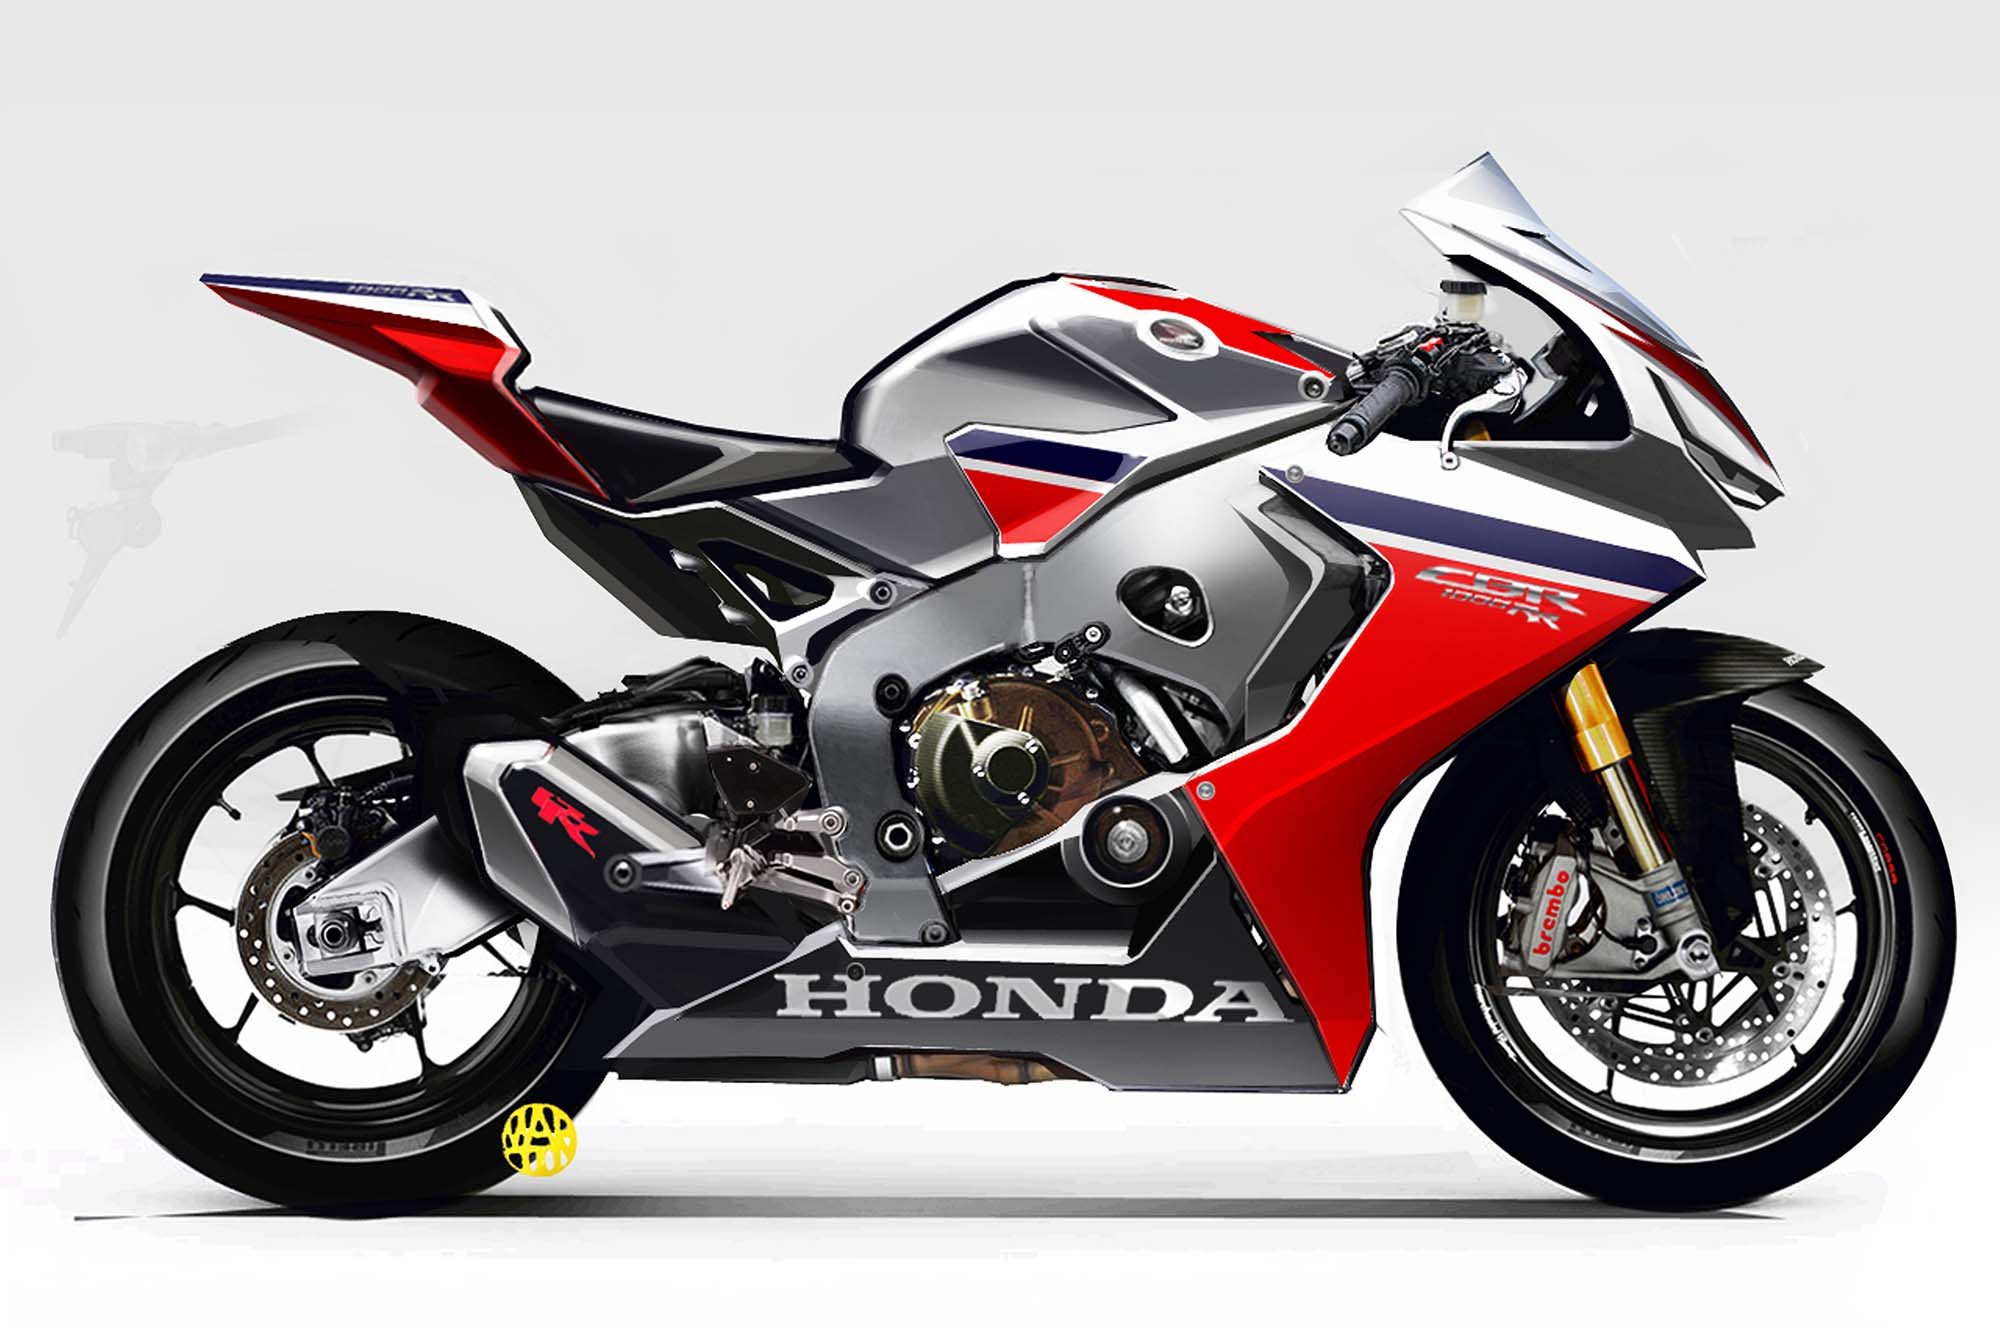 Some More Info About the 2017 Honda CBR1000RR - Asphalt & Rubber